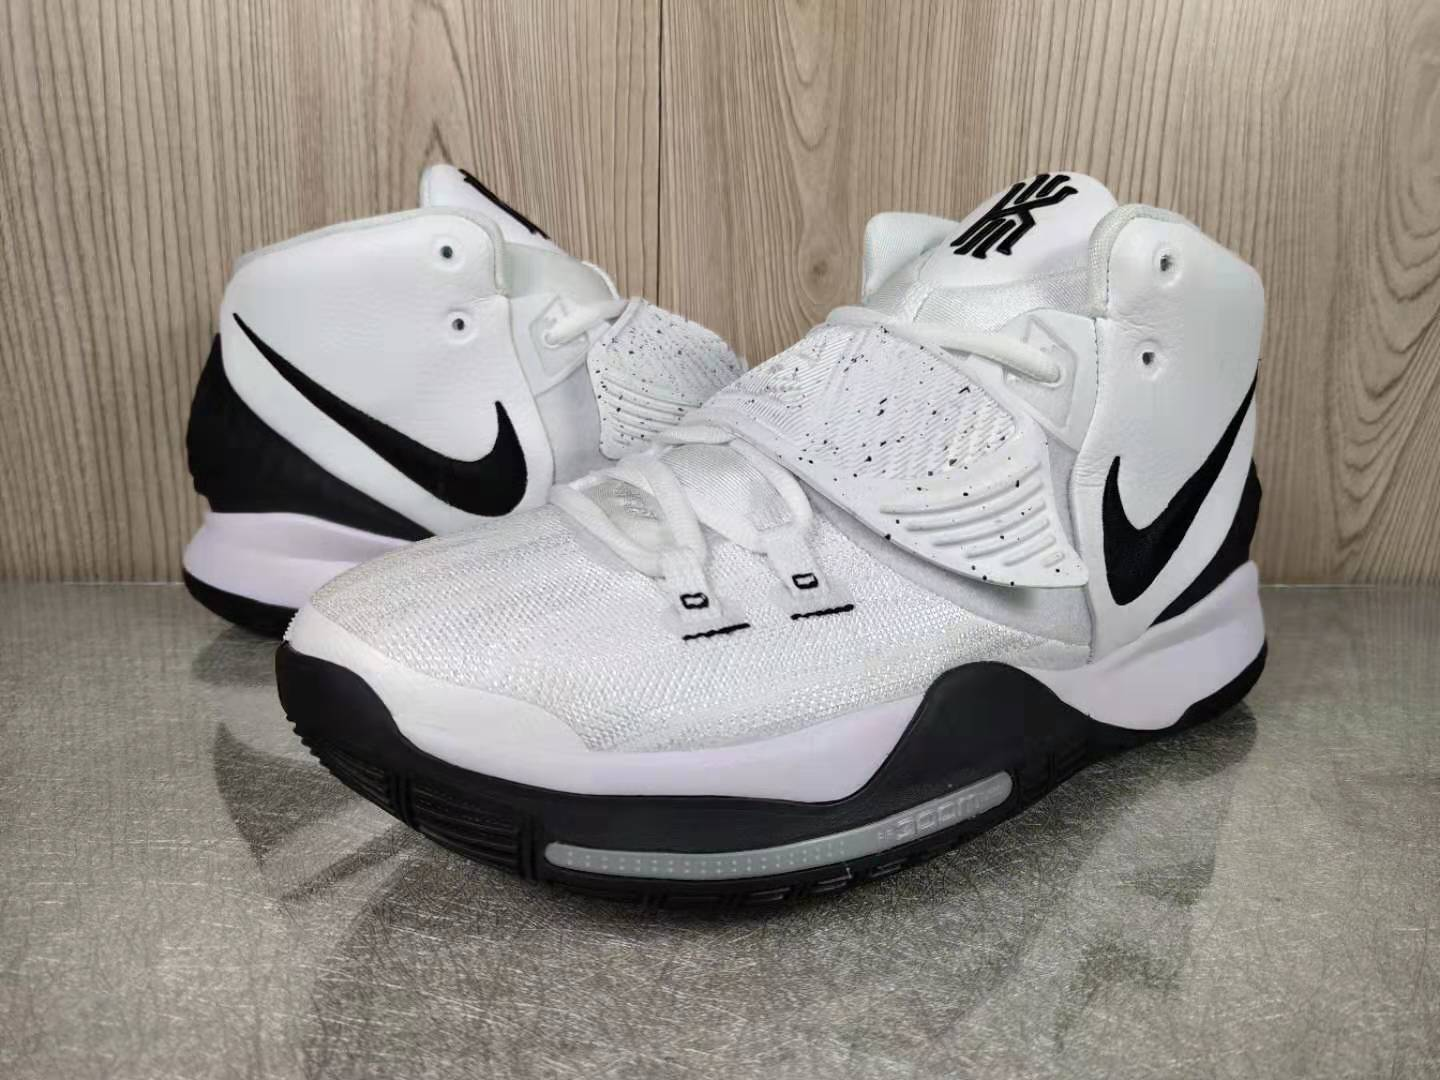 2020 Nike Kyrie 6 White Black